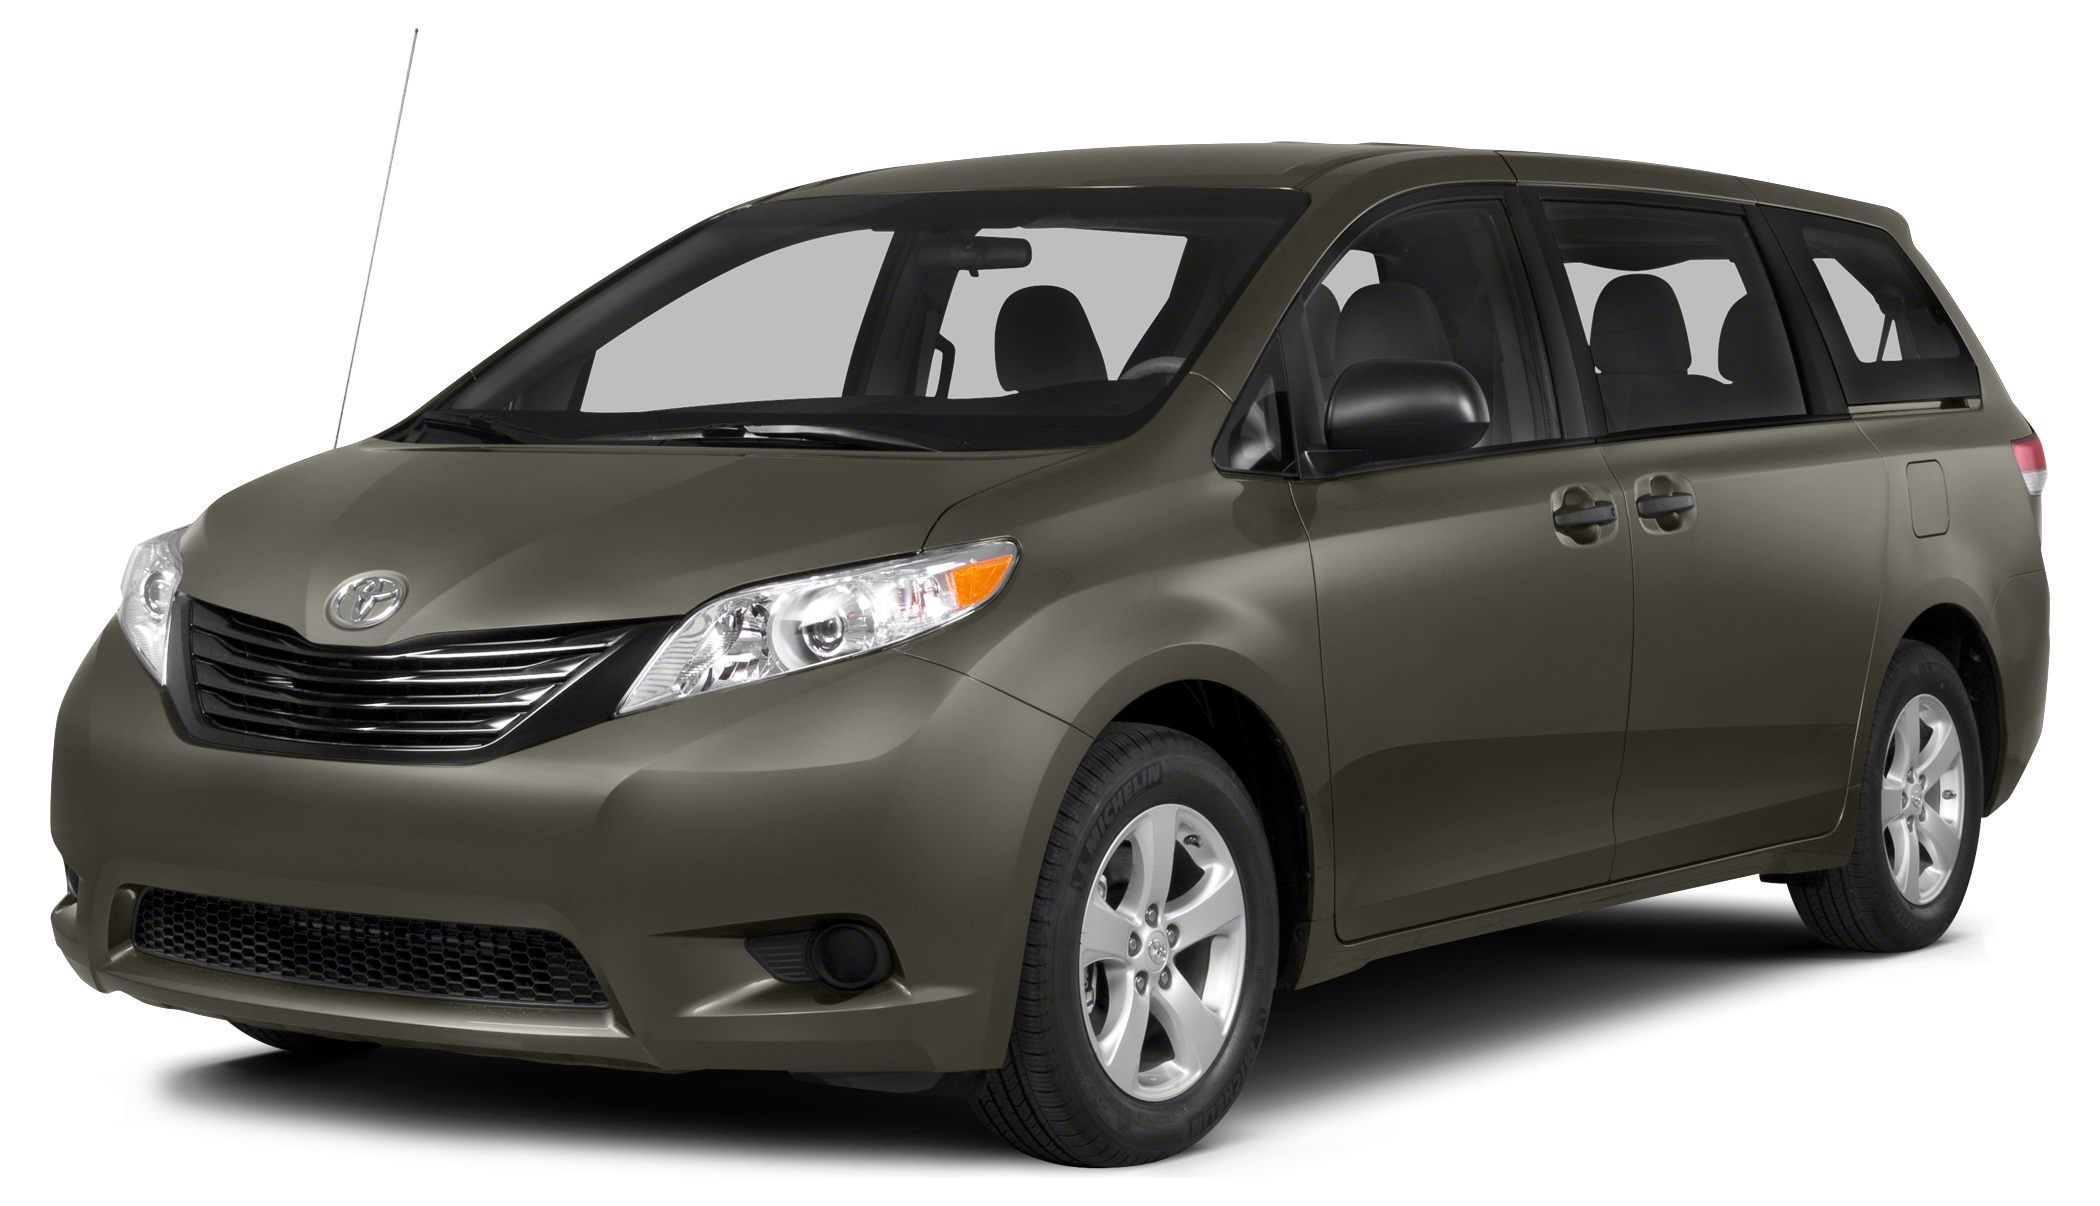 2014 Toyota Sienna XLE 8 Passenger PRICED TO MOVE 500 below Kelley Blue Book FUEL EFFICIENT 25